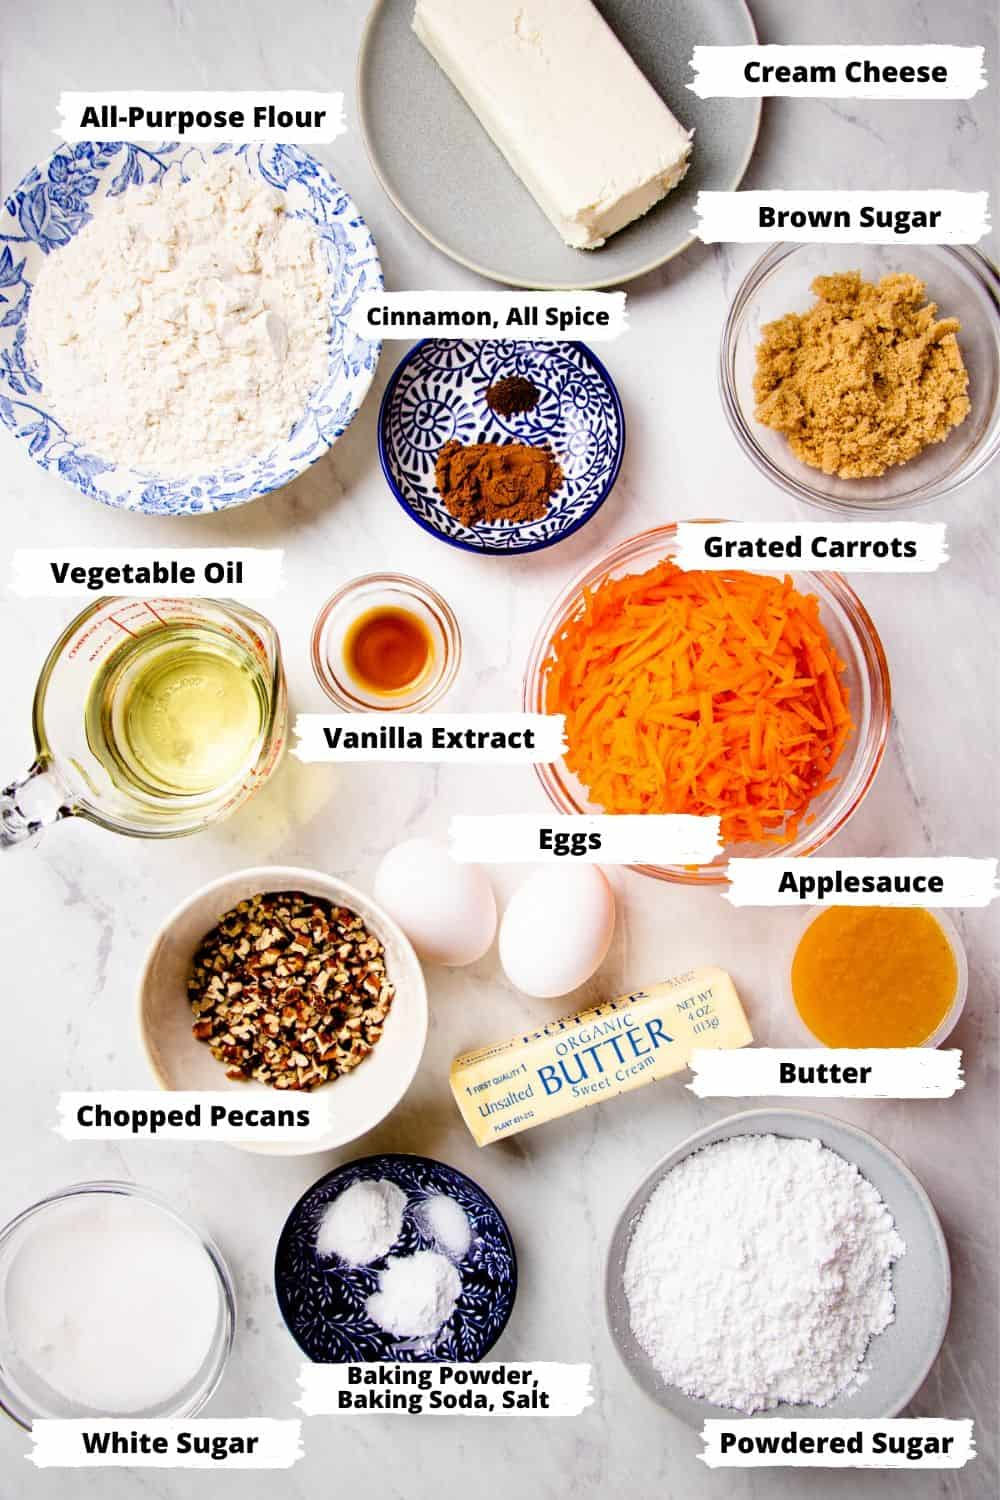 Ingredients for Carrot Cake Cupcakes.